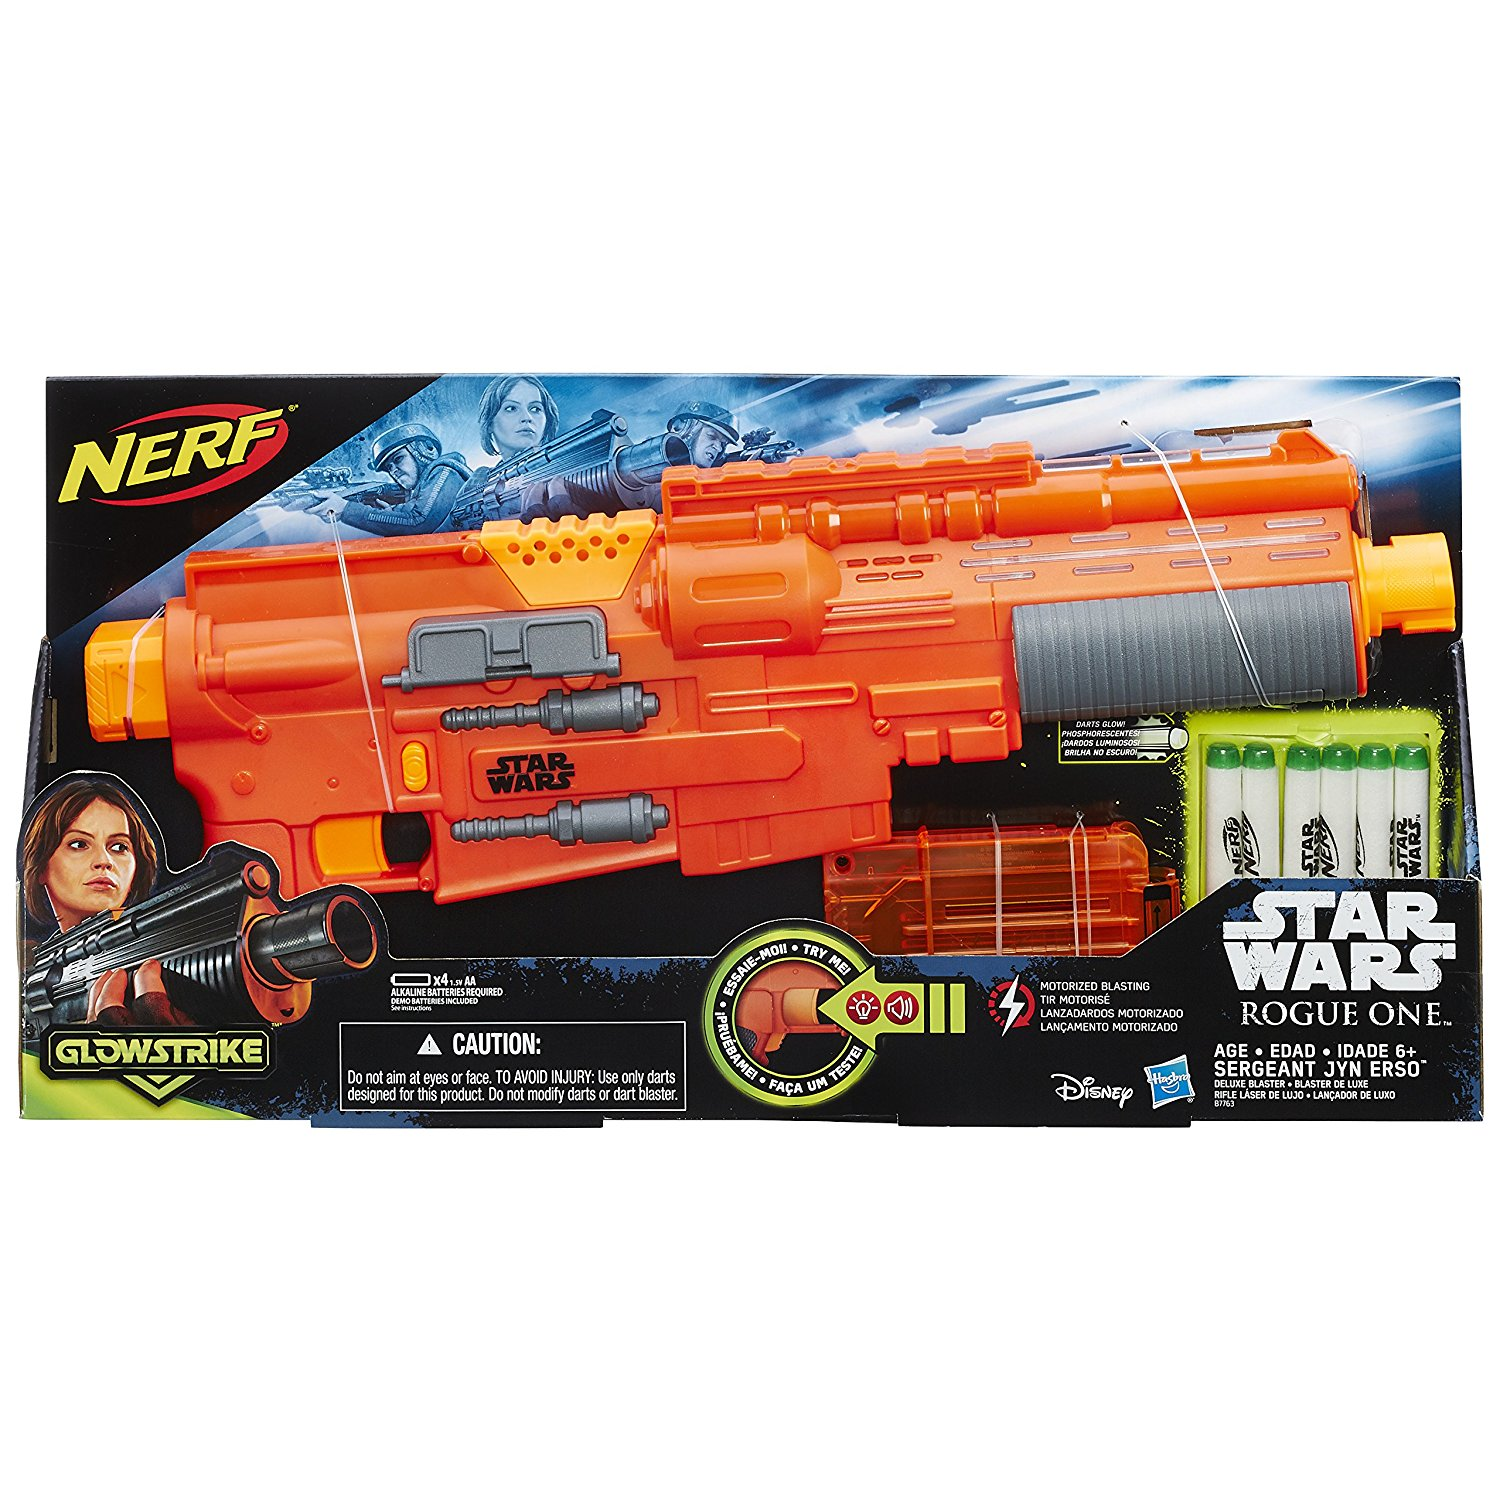 Nerf Star Wars Rogue One Sergeant Jyn Erso Deluxe Blaster-kids toys, boy toys, nerf toys, blasters, nerf guns, girl toys, outdoor toys, star wars toys